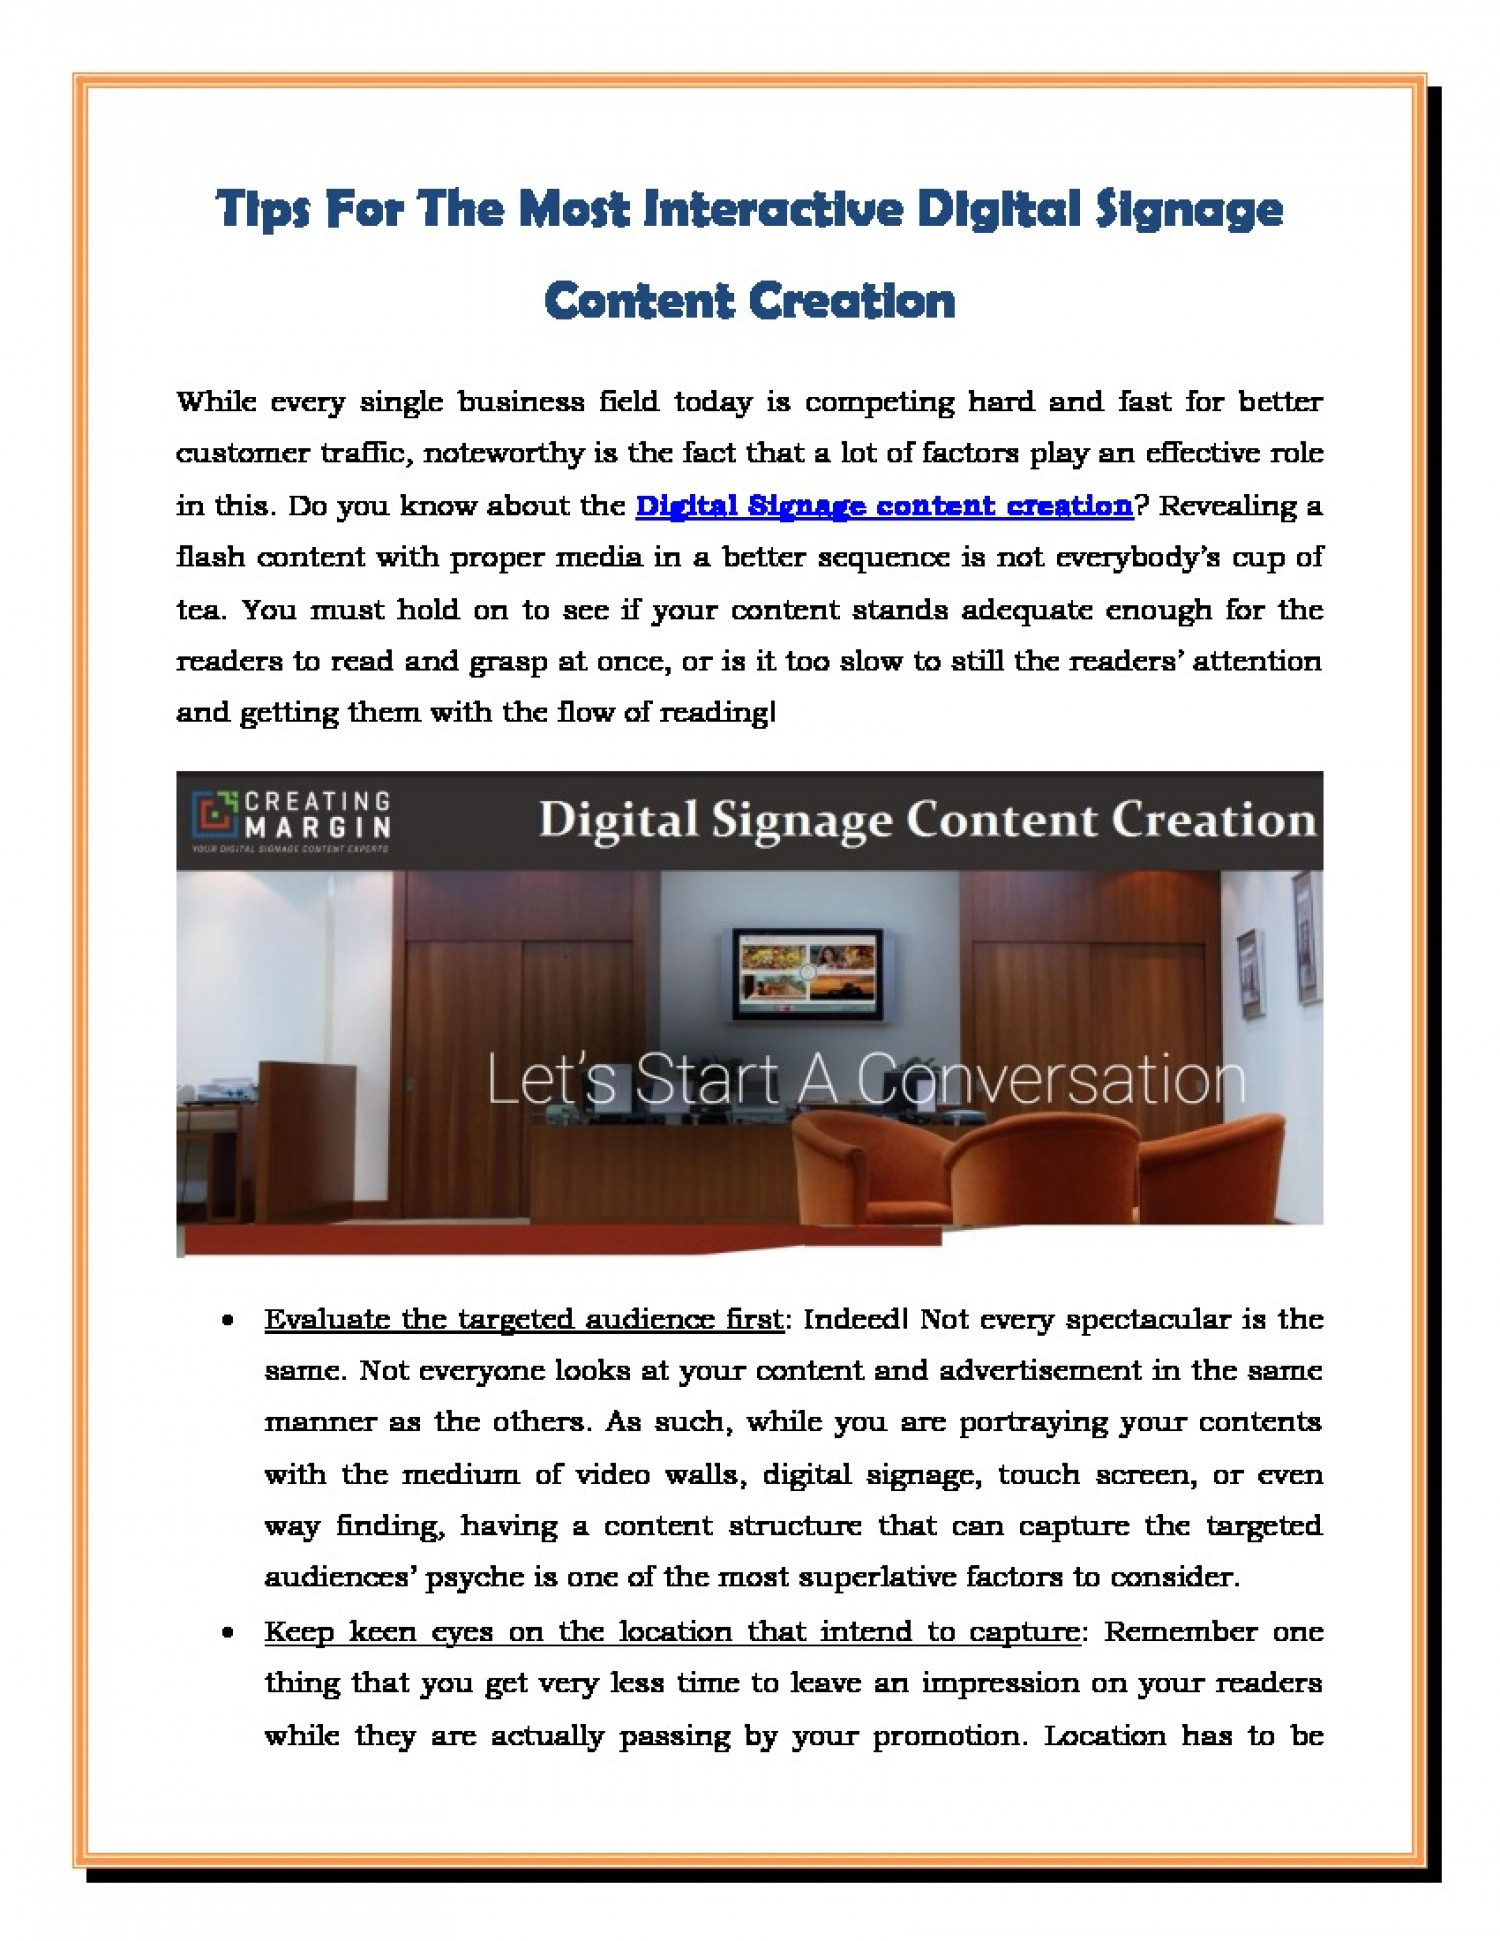 Tips For The Most Interactive Digital Signage Content Creation Infographic